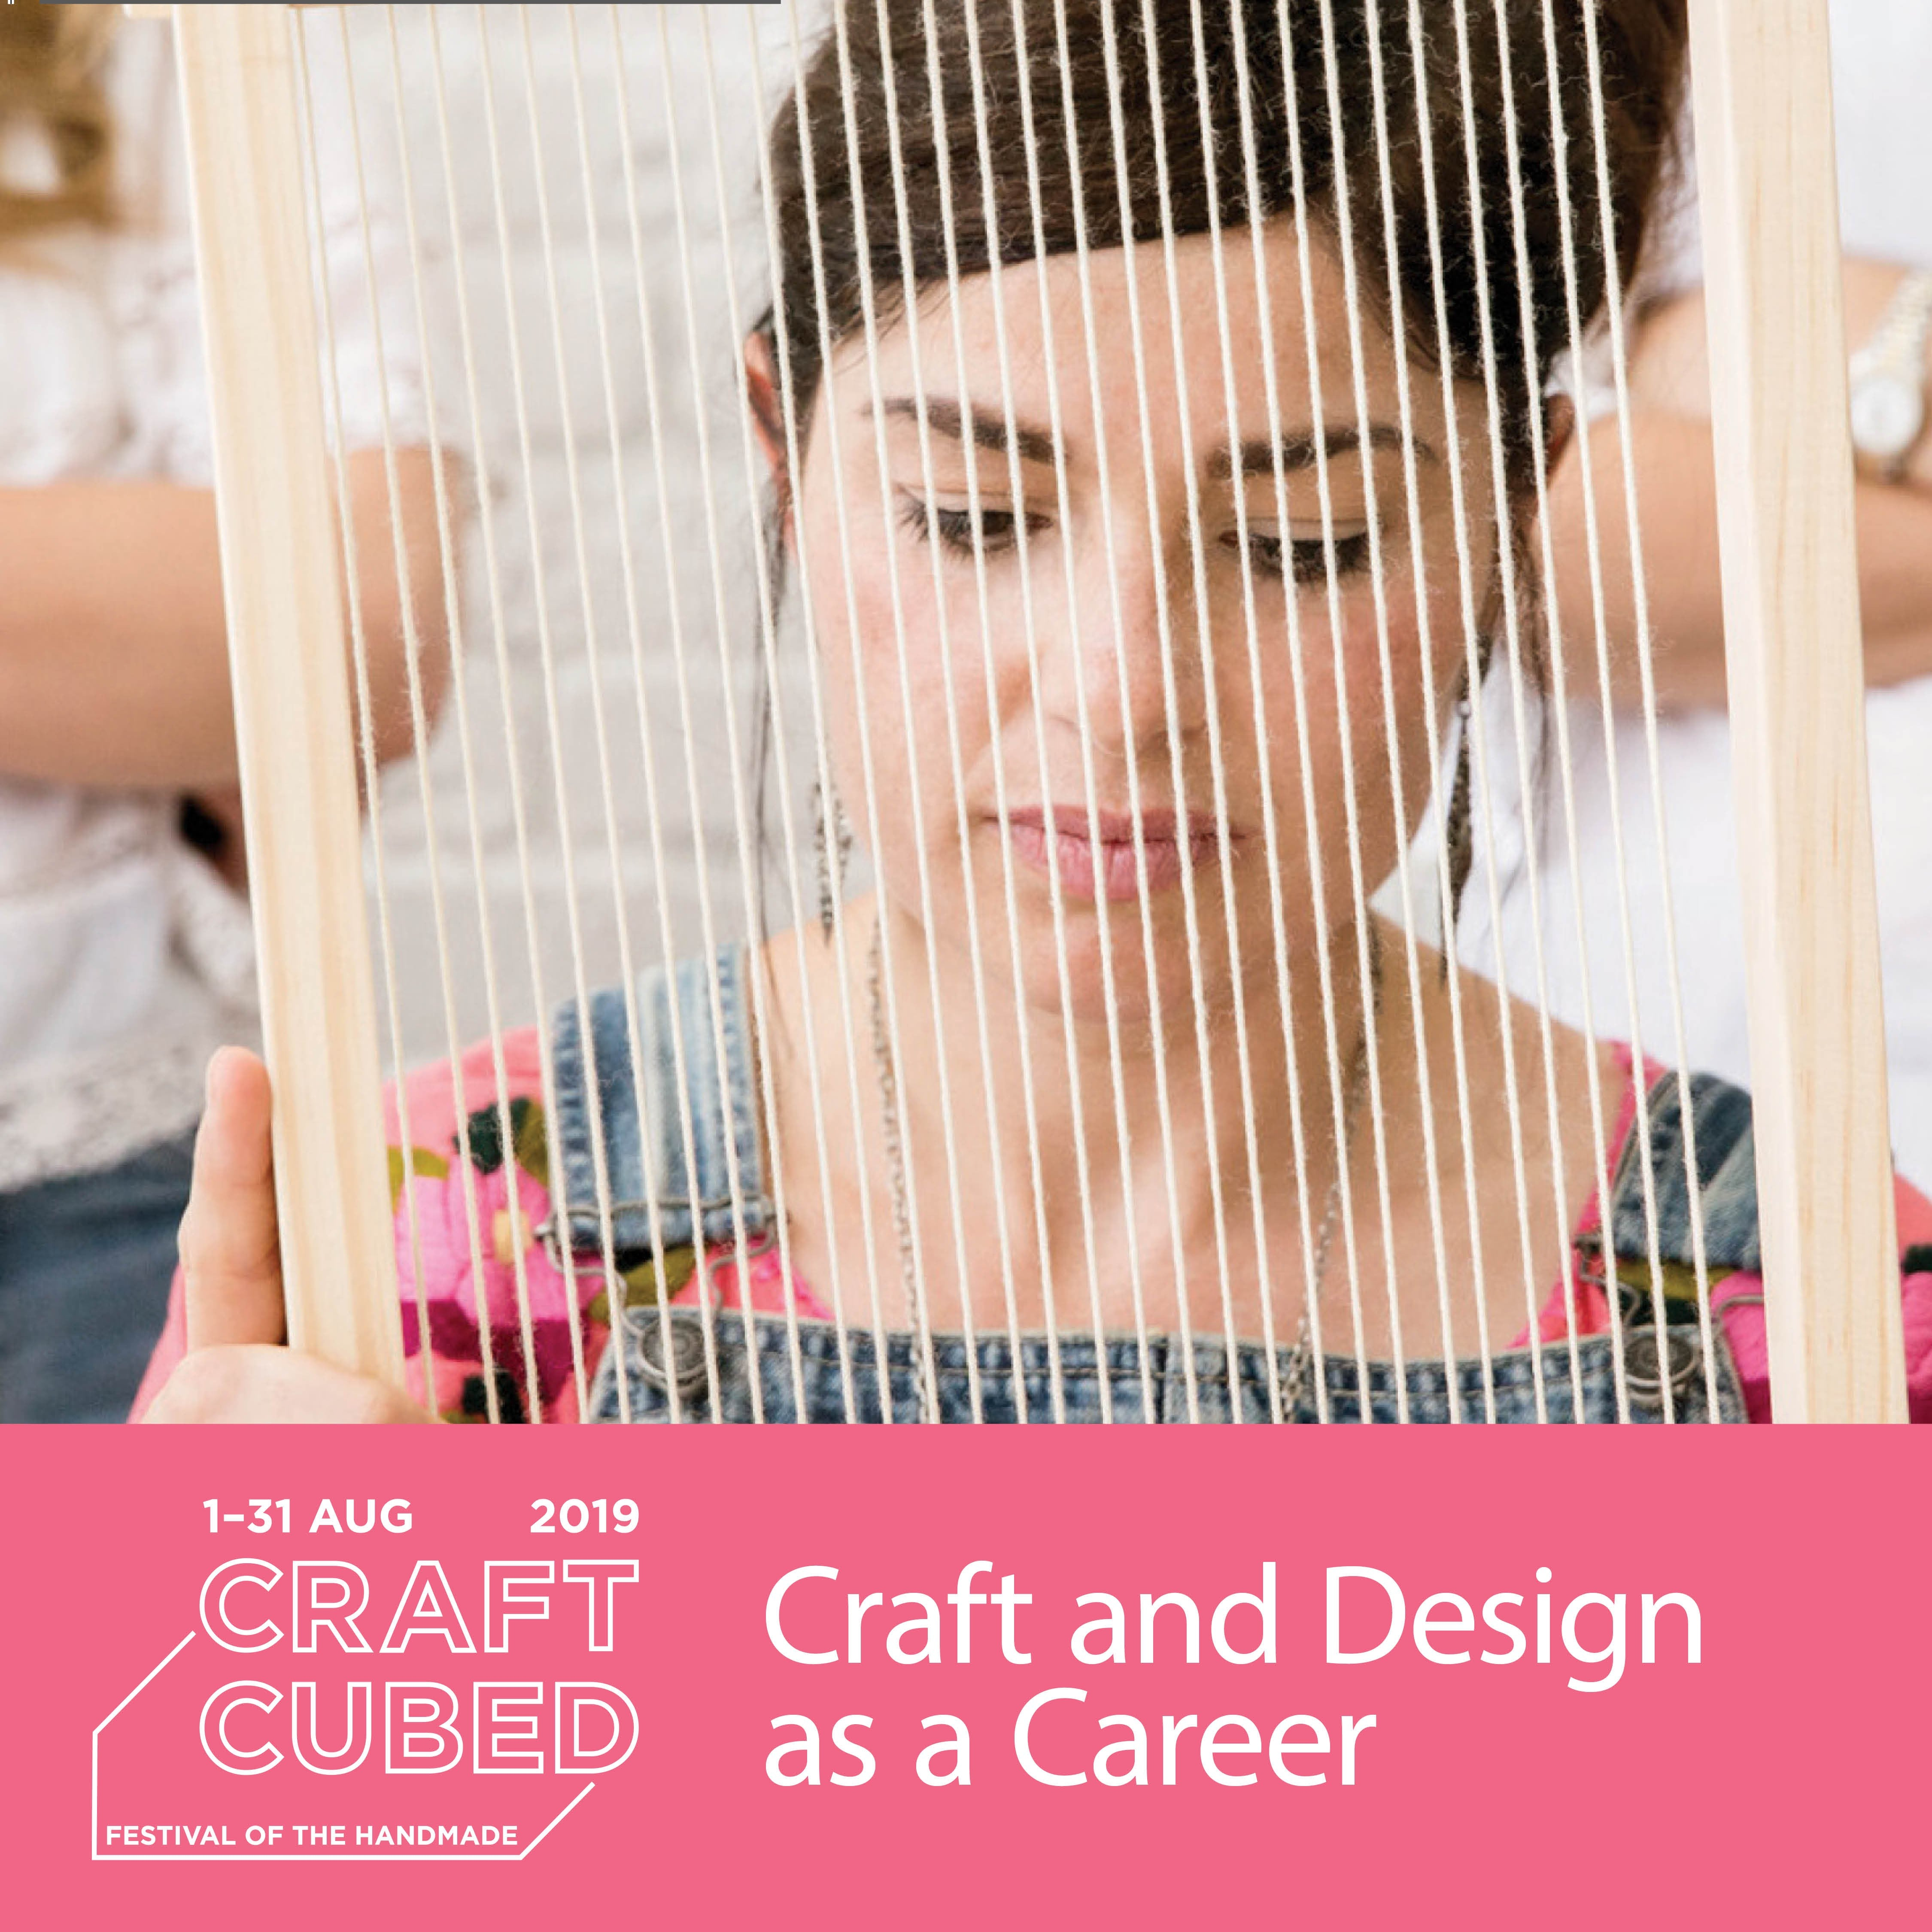 Craft and Design as a Career